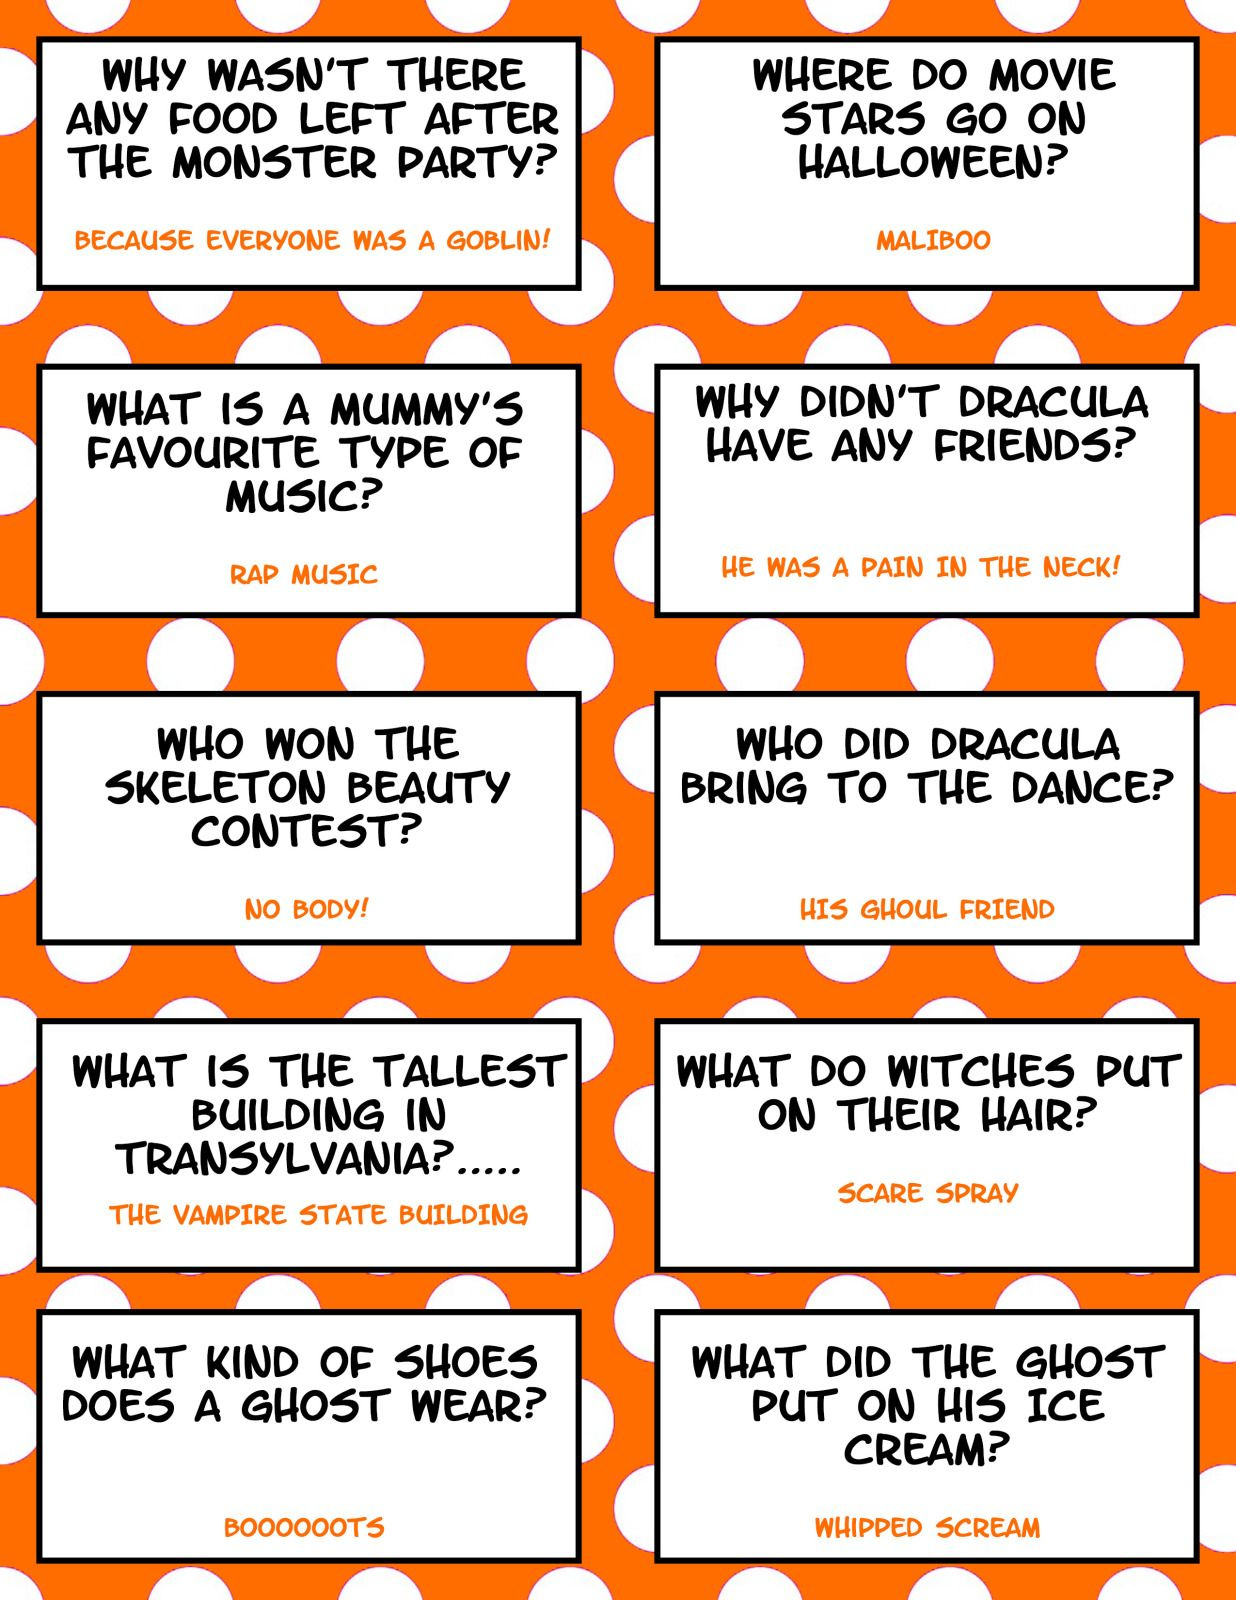 Free Printable Halloween Jokes For Kids - Halloween Lunch Box Jokes - Free Printable Jokes For Adults